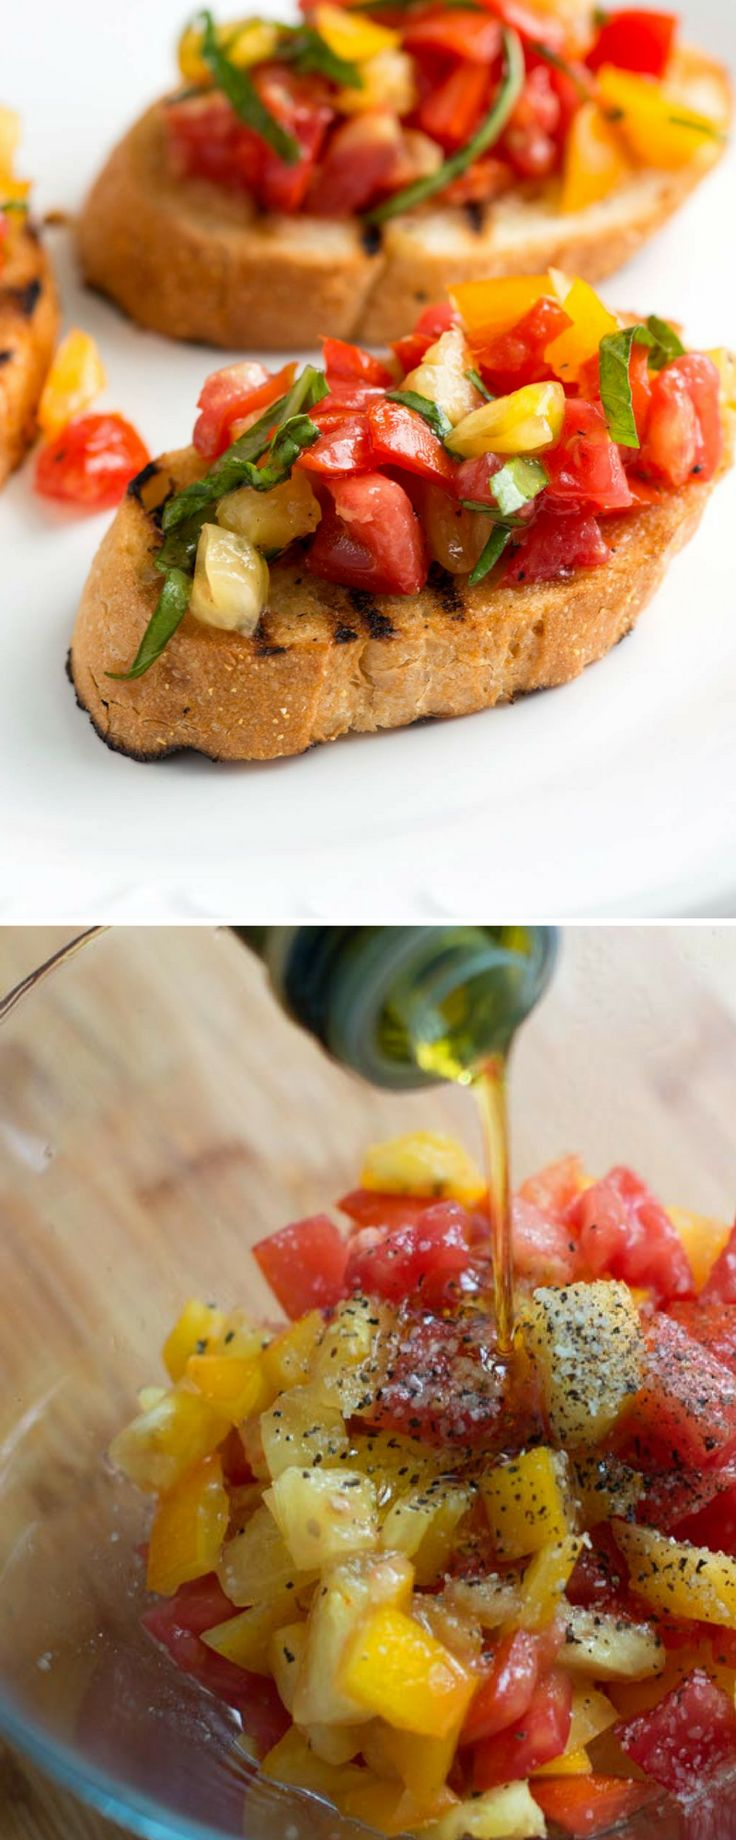 How to make our favorite homemade bruschetta with tomatoes and basil. Plus, five easy tips for how to make it best.